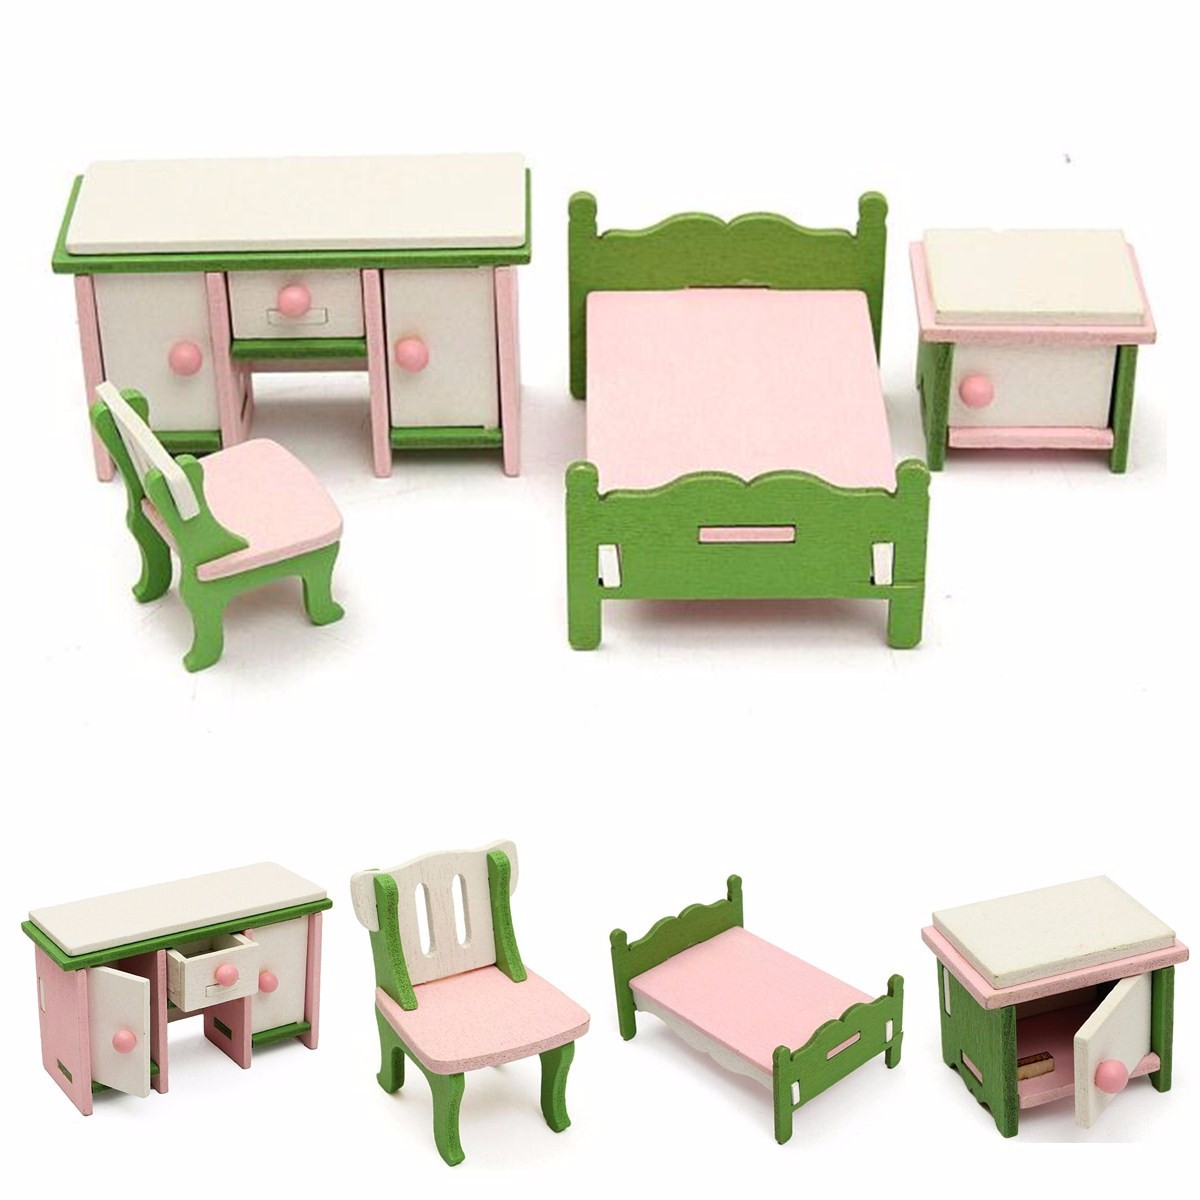 Awesome Wooden Doll House Miniature Bedroom Furniture Set Families Role Play Toys  Gift